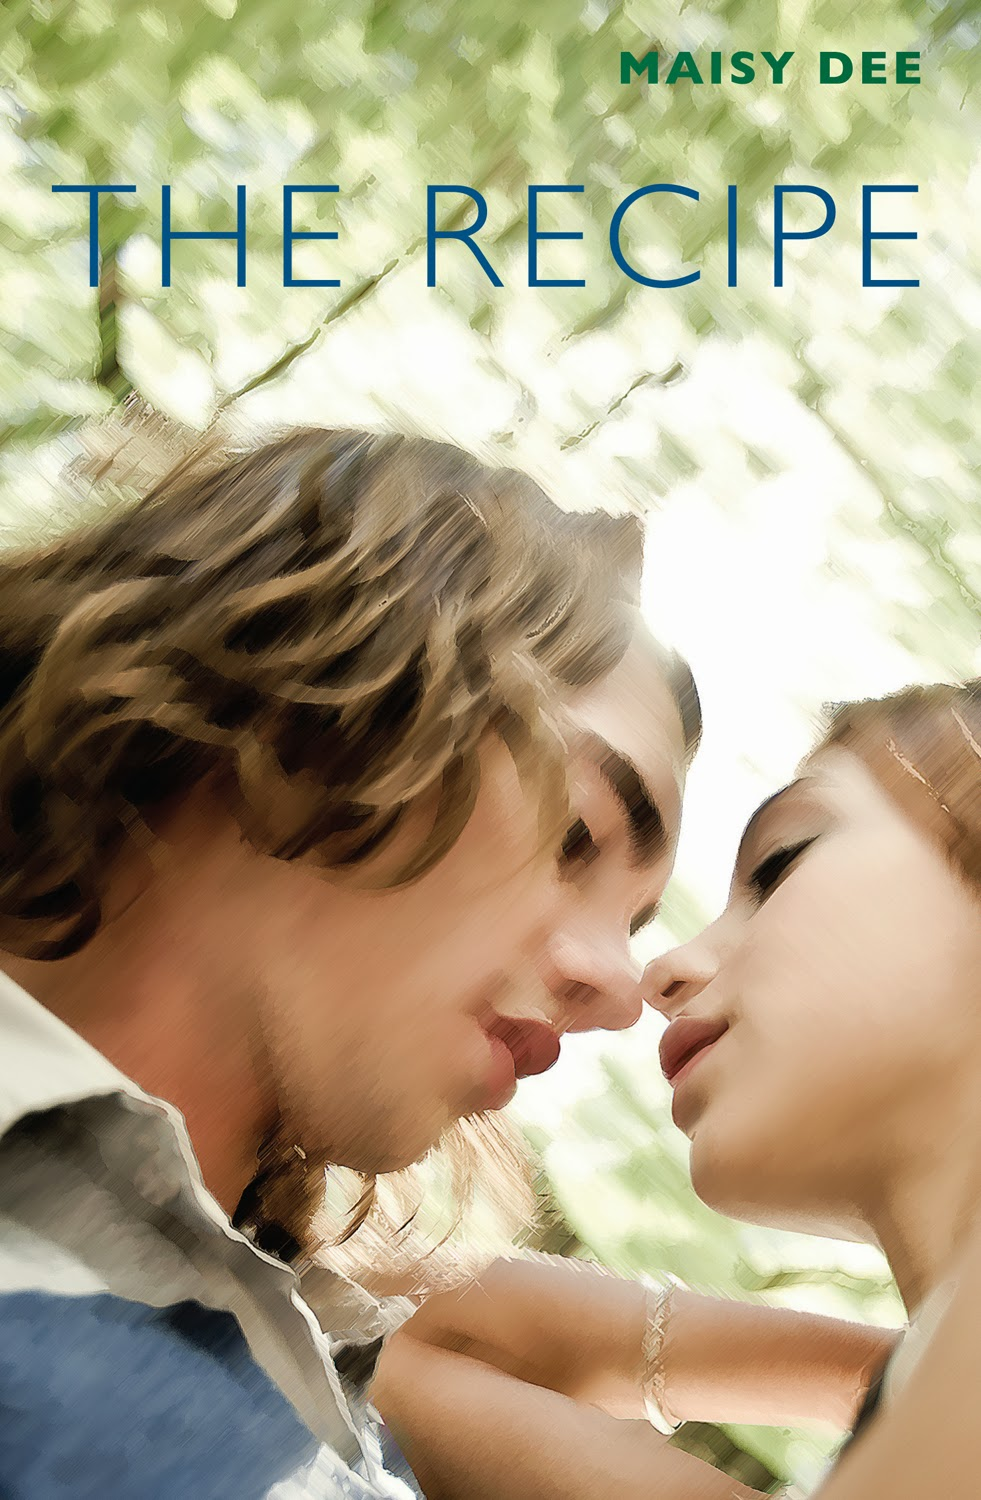 The Recipe By Maisy Dee Young Adult Romance 212 Pages